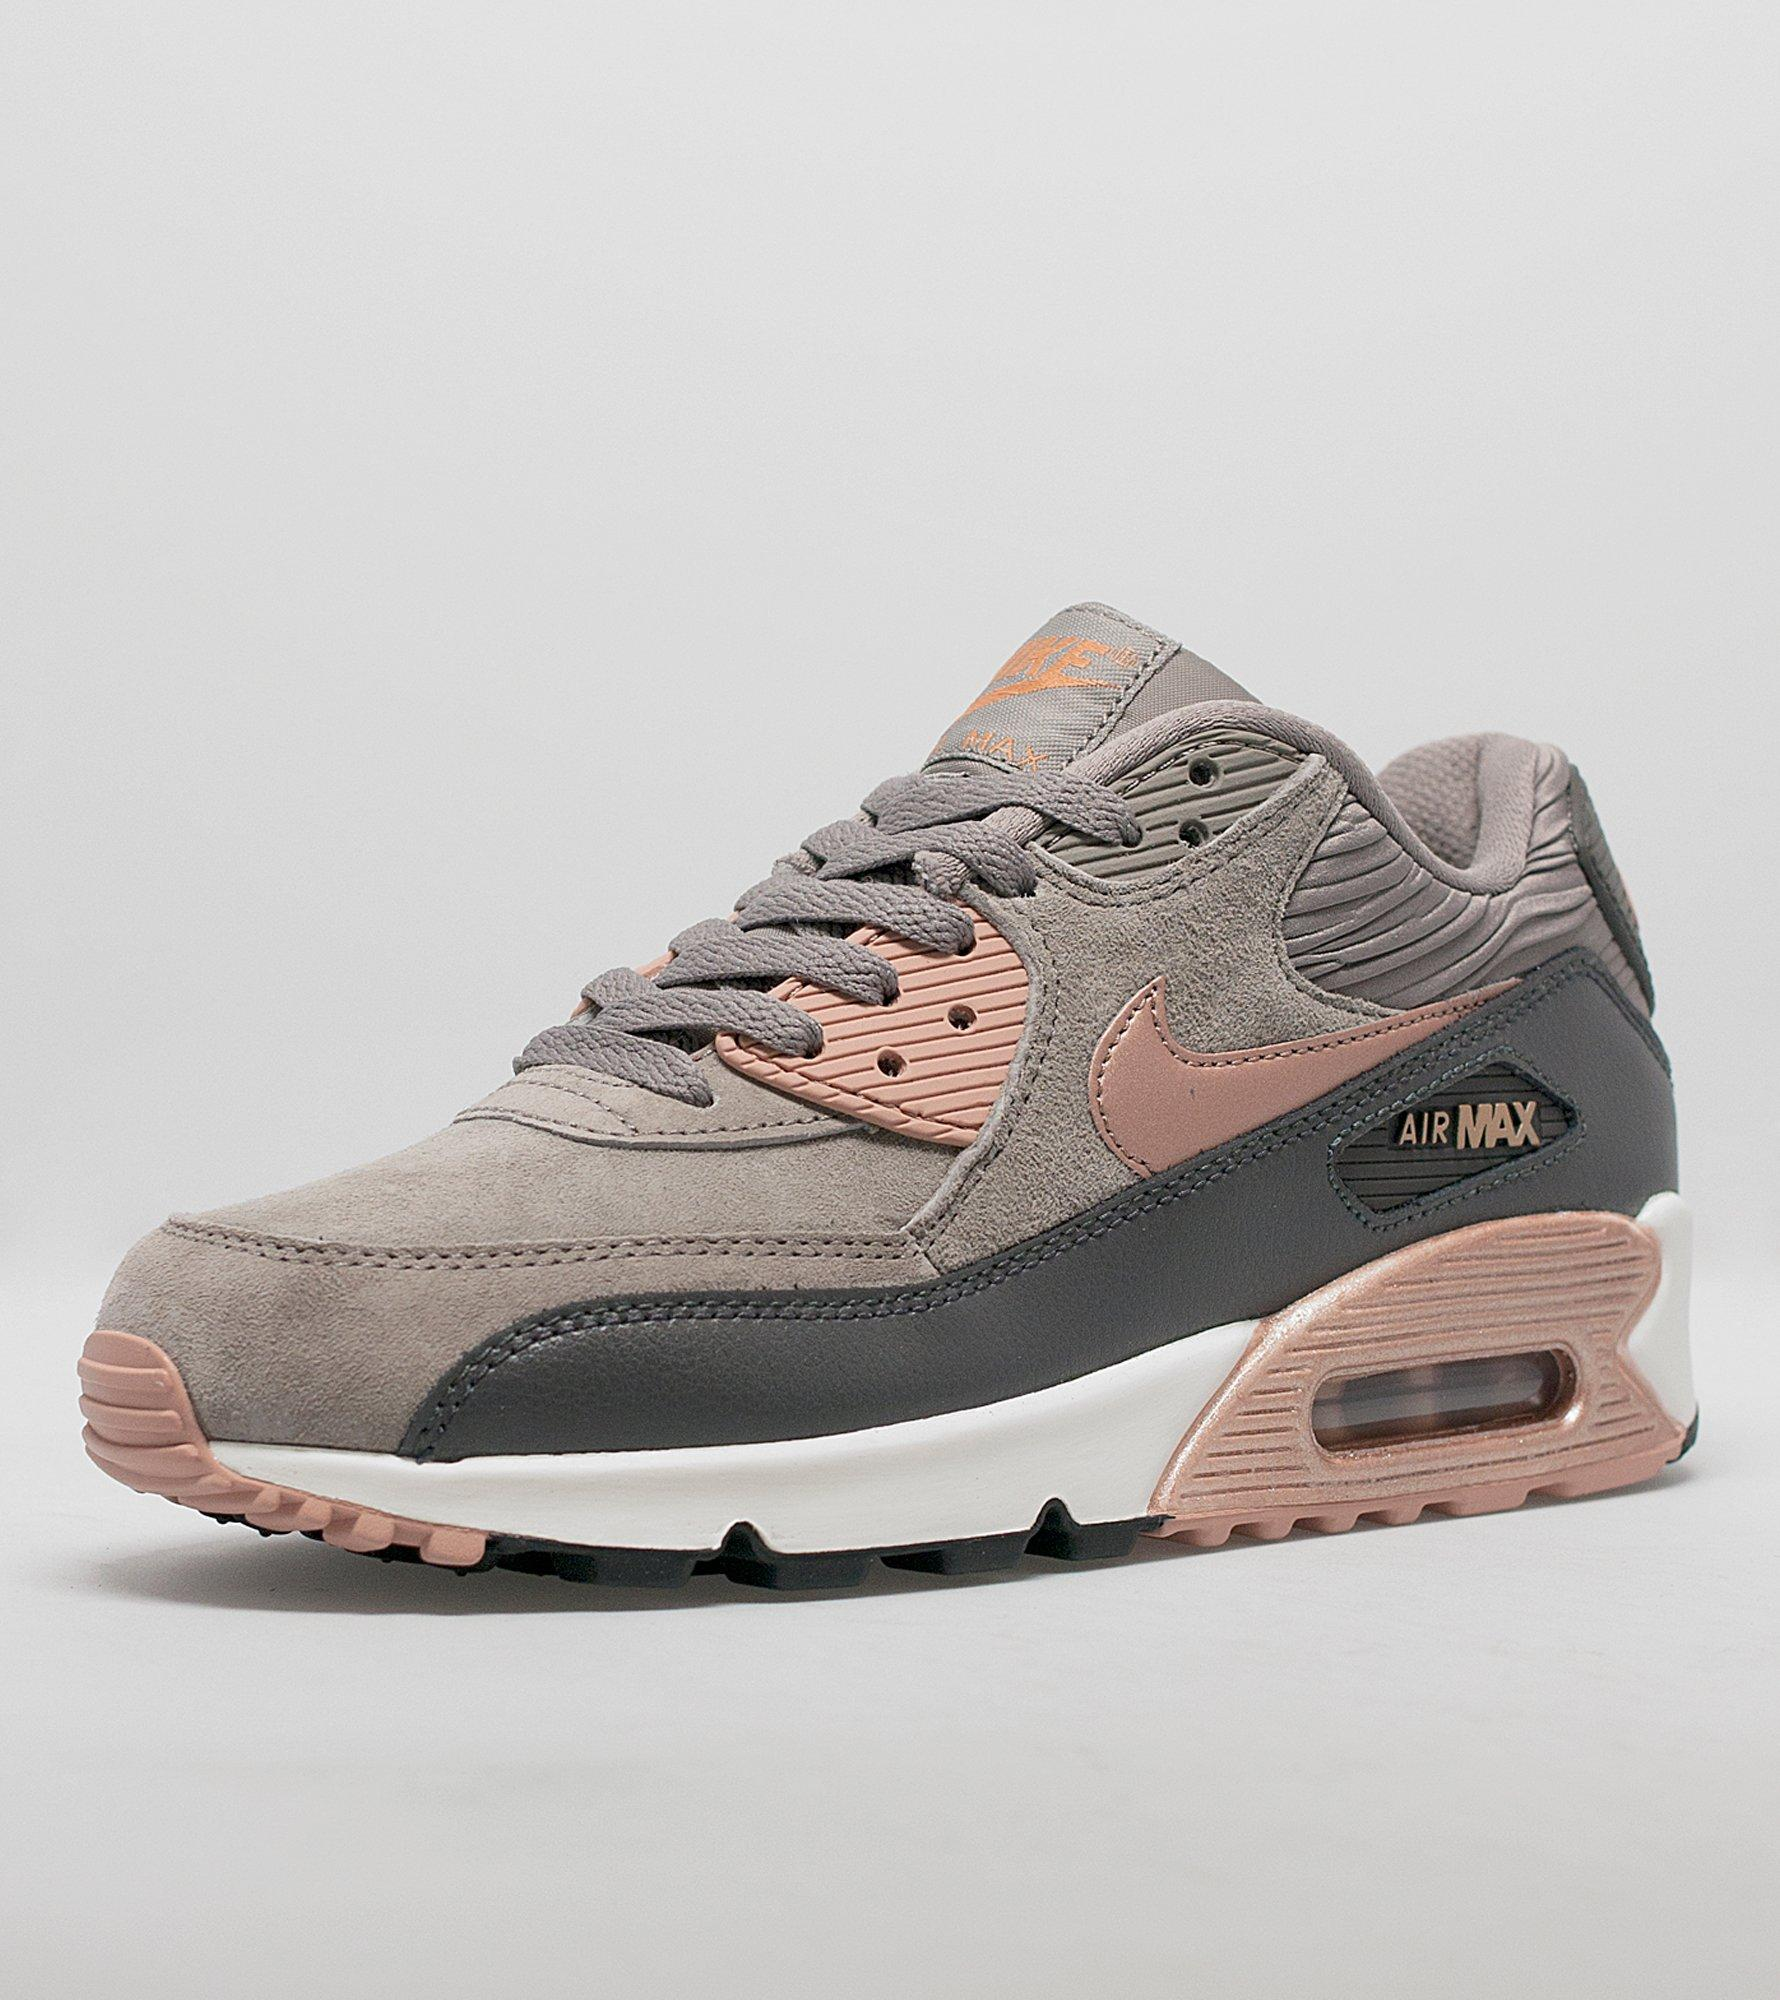 nike air max 90 rose gold. Black Bedroom Furniture Sets. Home Design Ideas